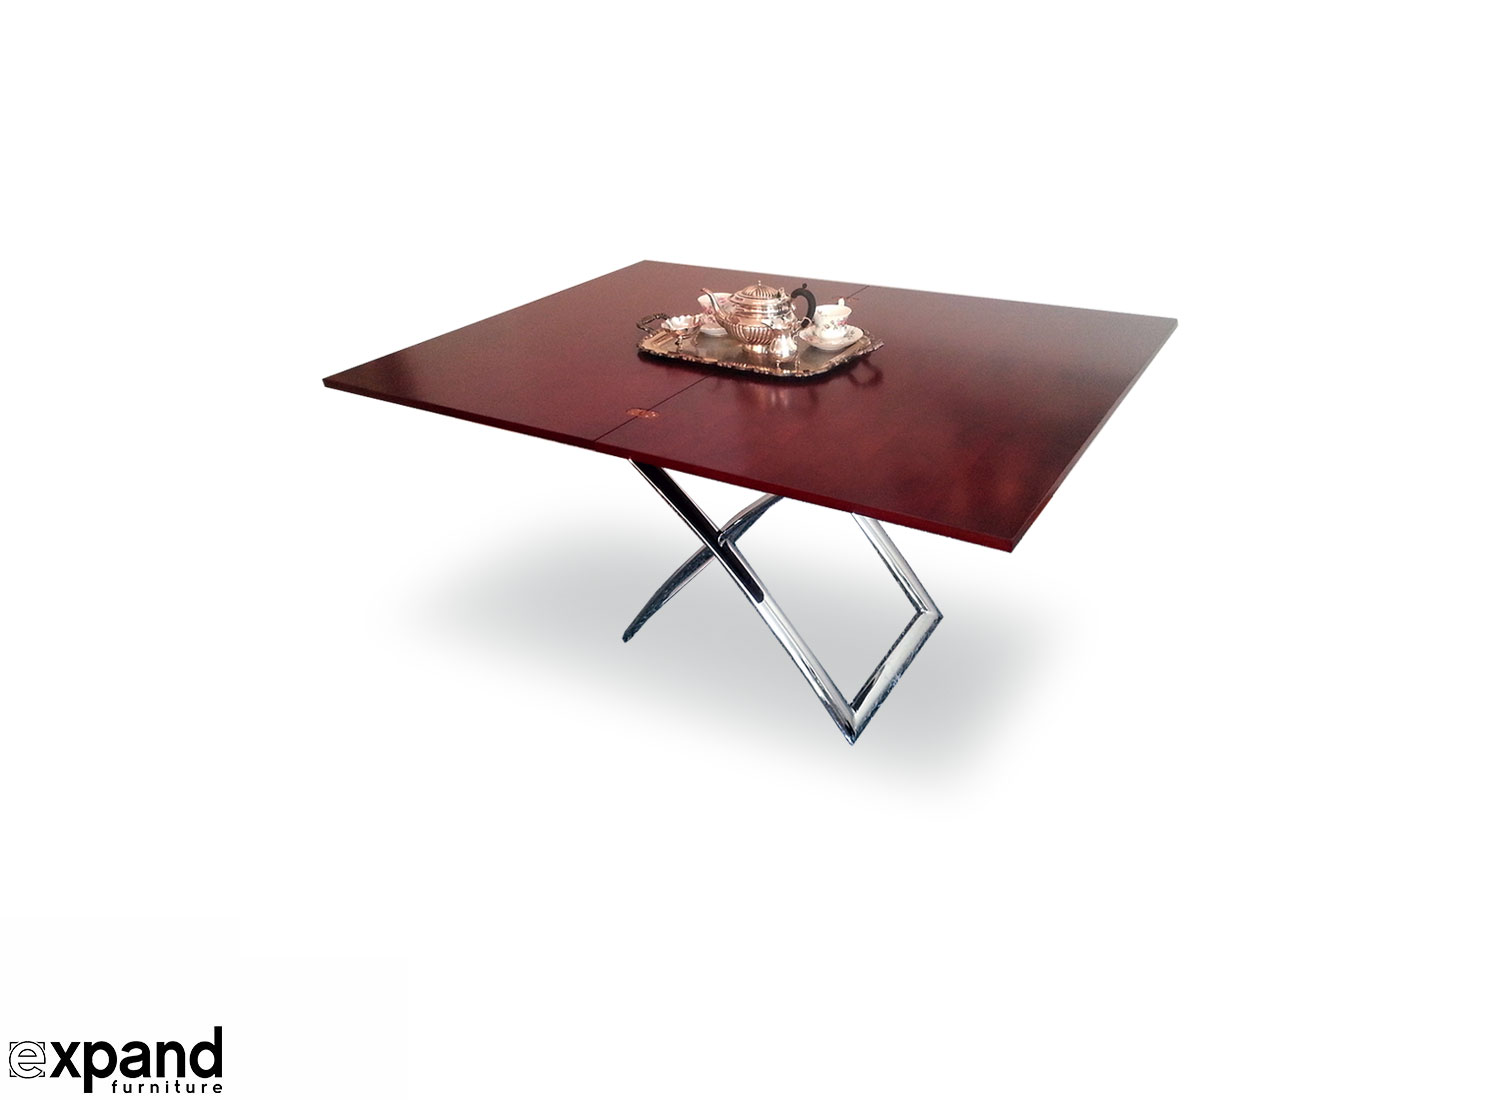 space saving expand table